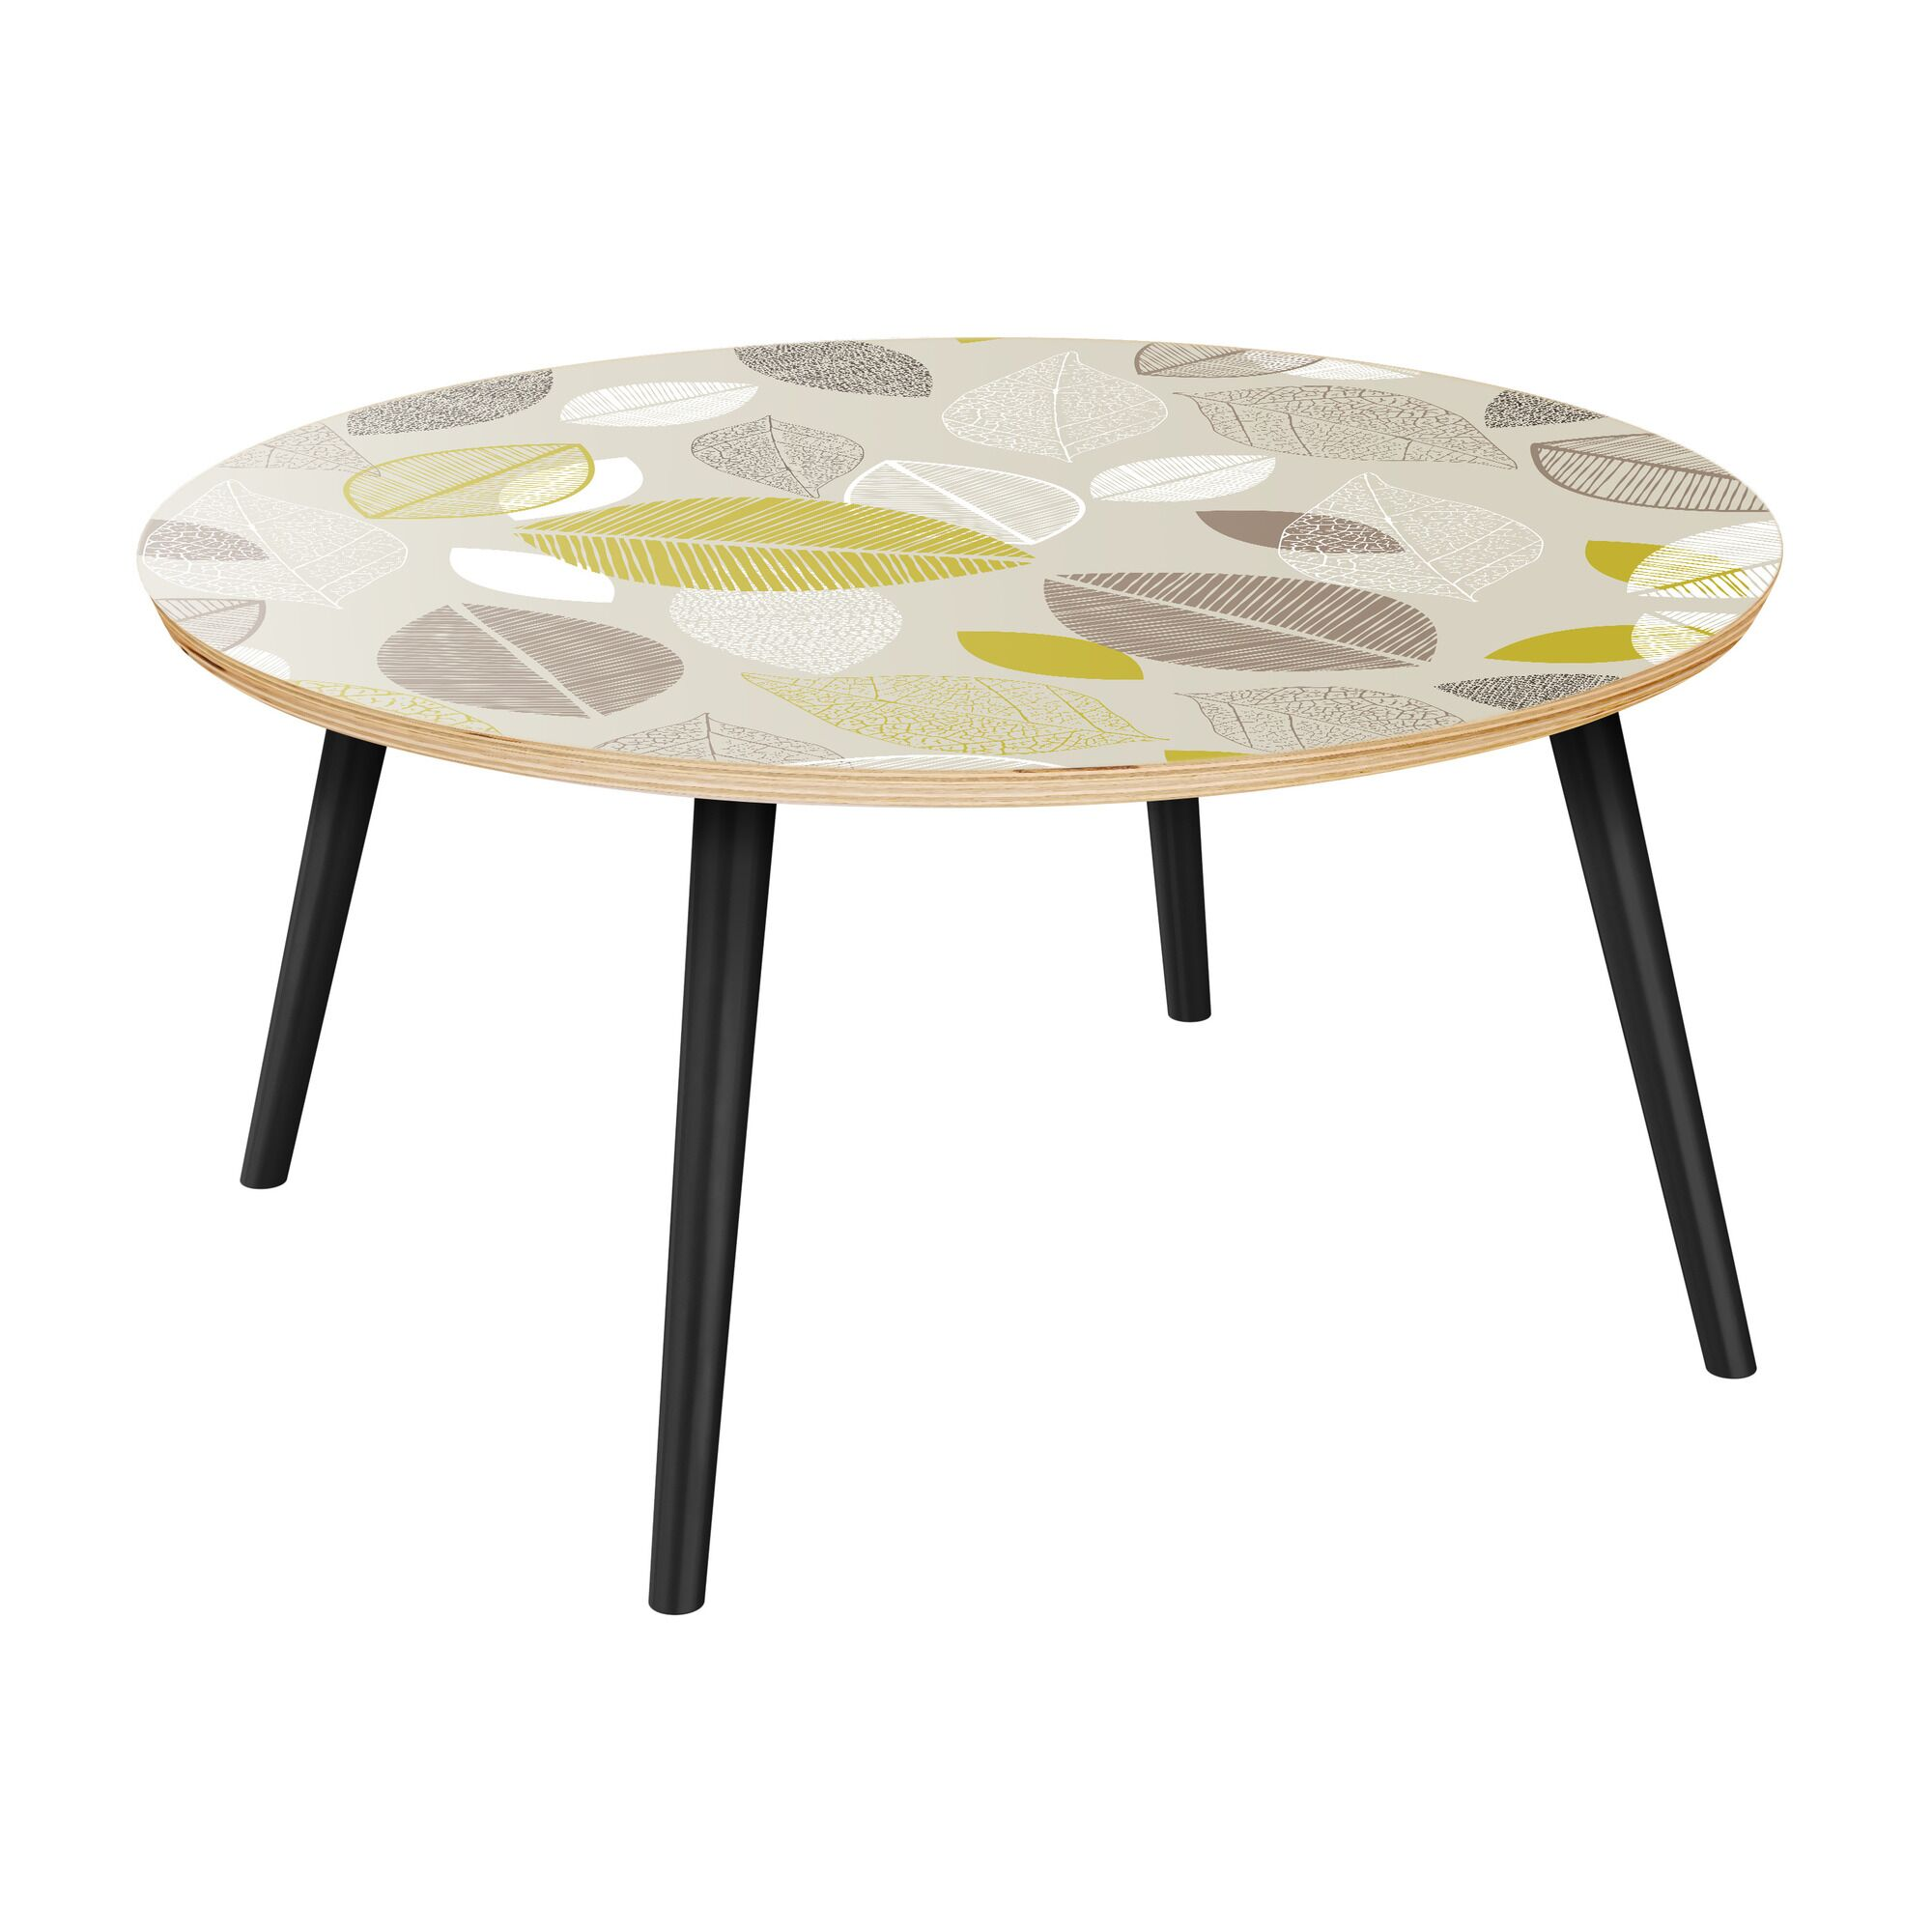 Jepson Coffee Table Table Top Boarder Color: Natural, Table Base Color: Black, Table Top Color: Green/Brown